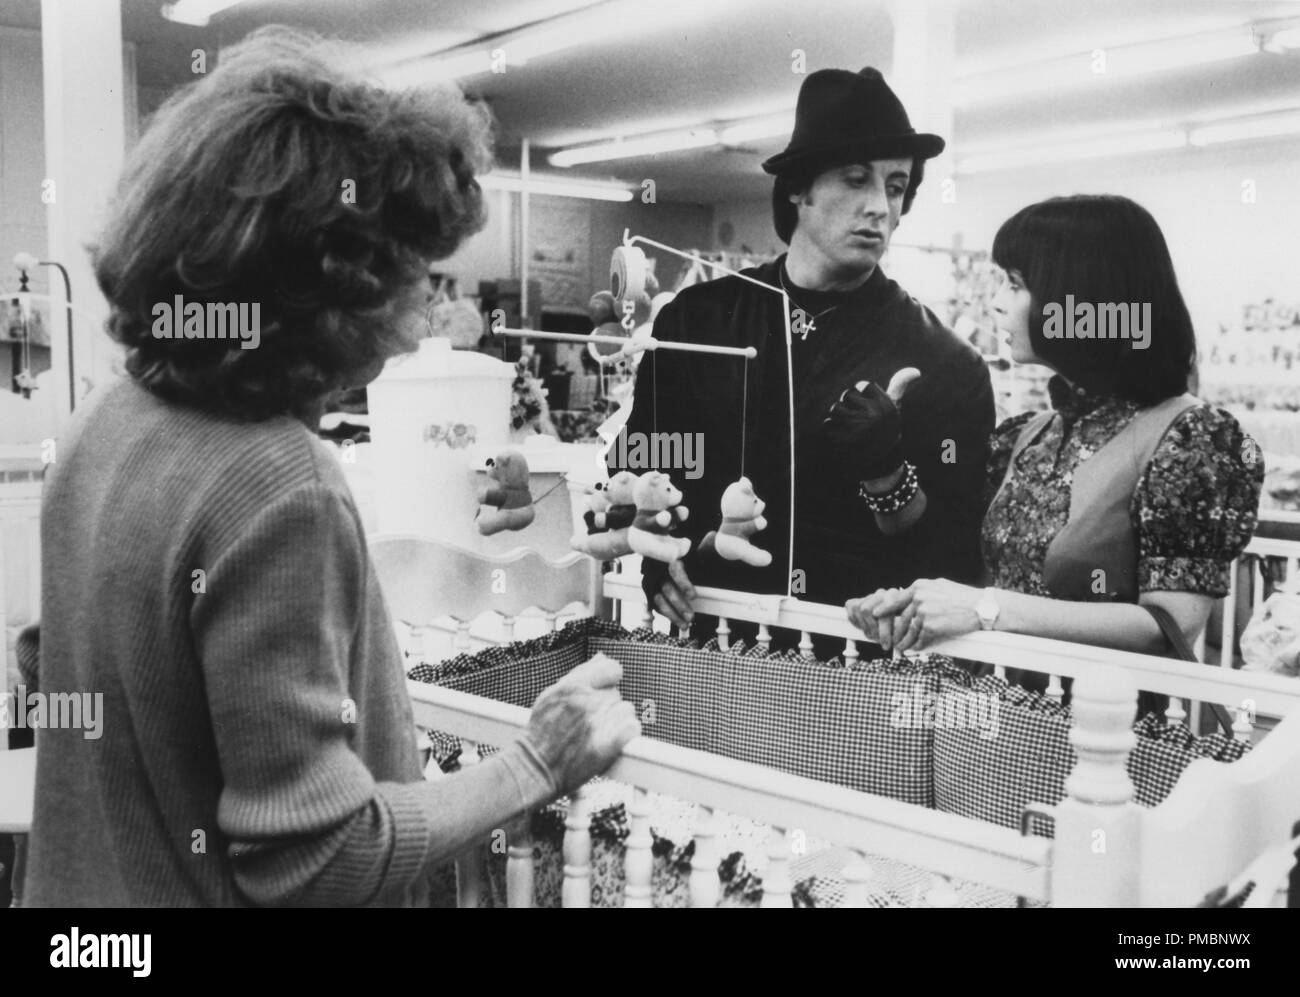 Sylvester Stallone as Rocky Balboa and Talia Shire as Adrian in 'Rocky II', 1979 MGM   File Reference # 32603_094THA - Stock Image